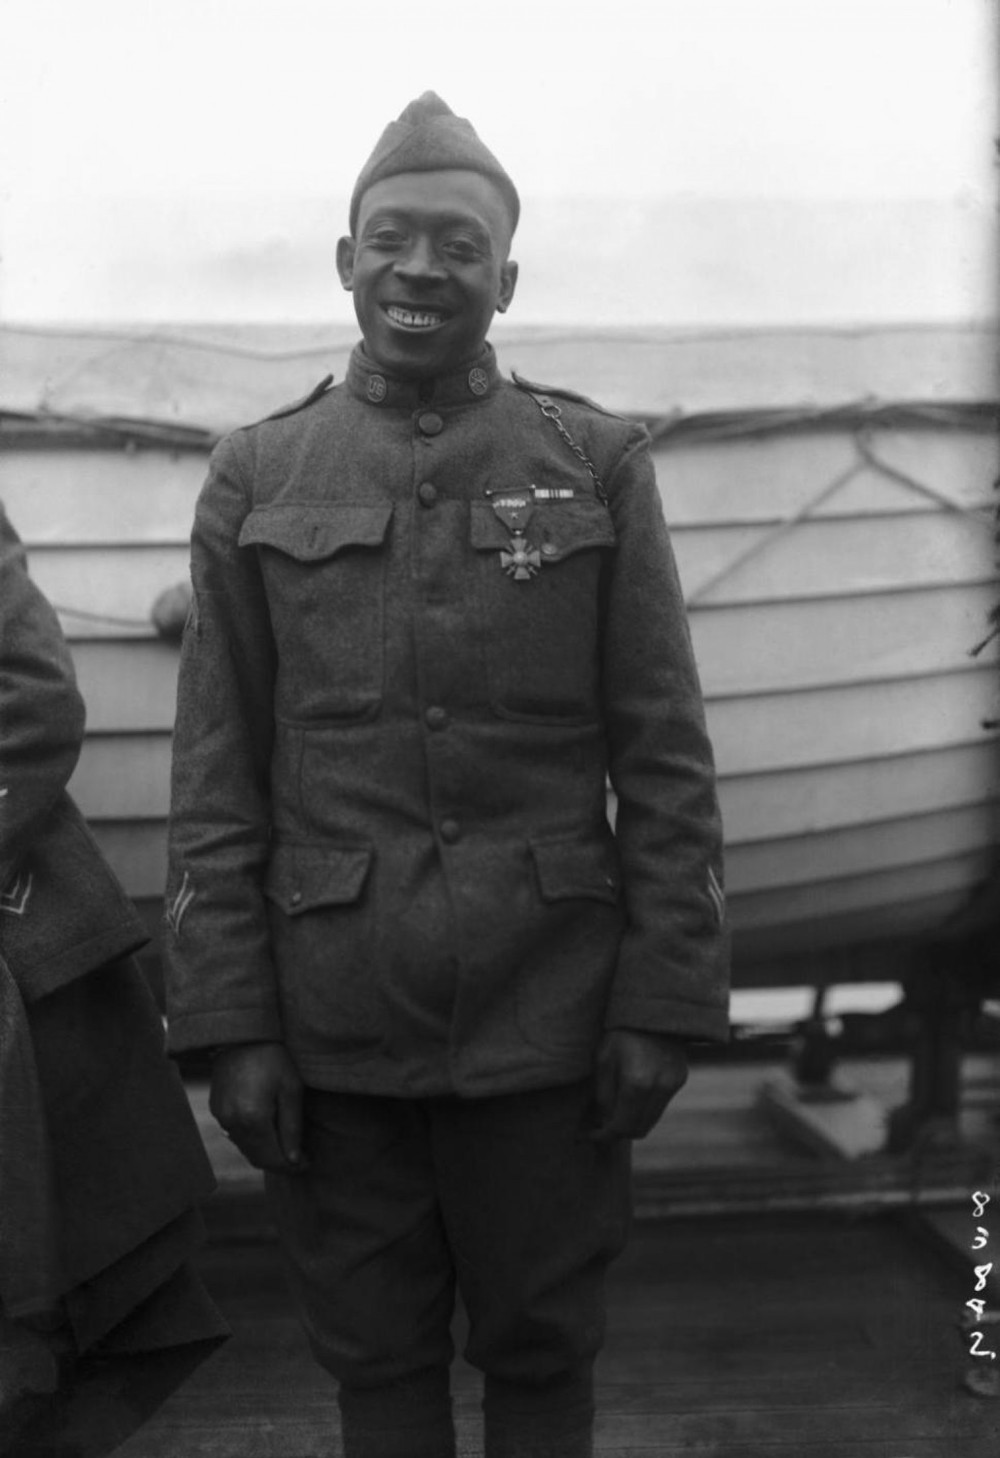 SGT Henry Johnson Medal of Honor recipient